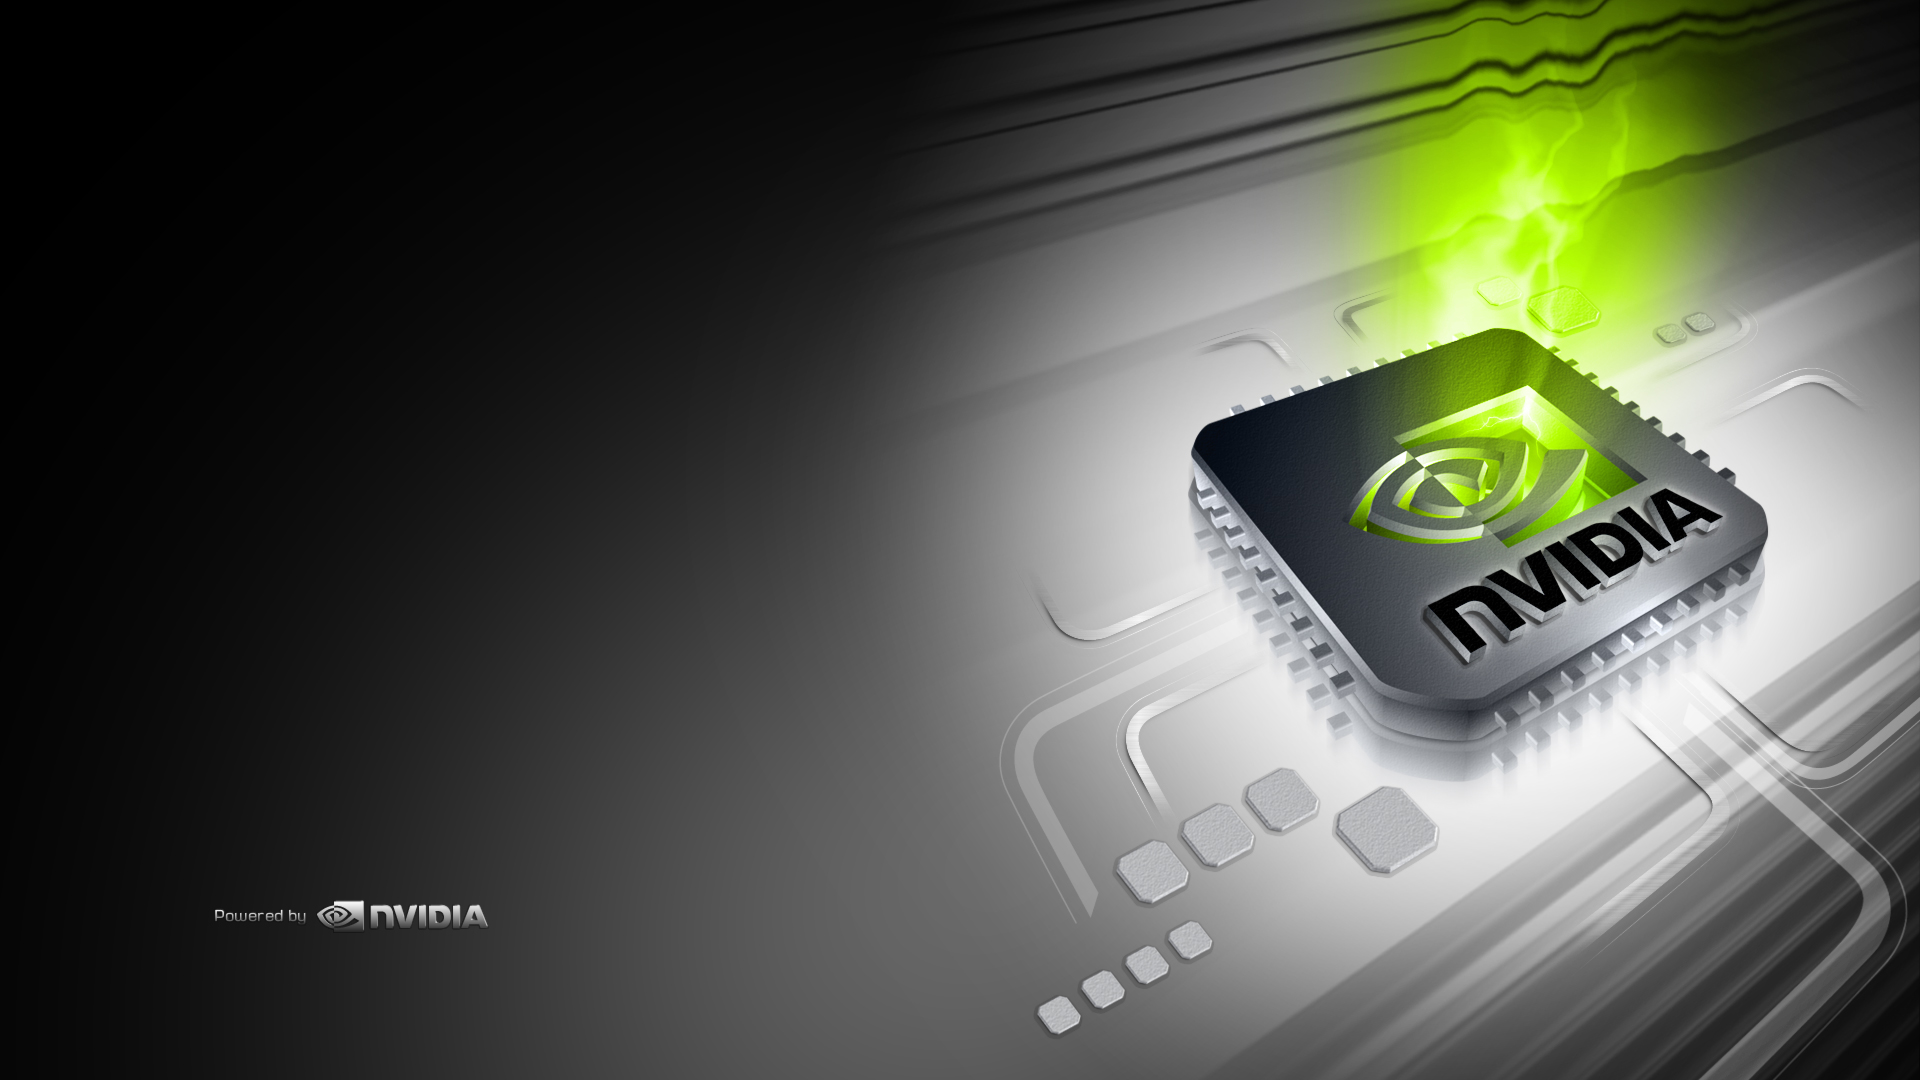 Download Nvidia HD Wallpaper 1739 Full Size downloadwallpaperhd 1920x1080